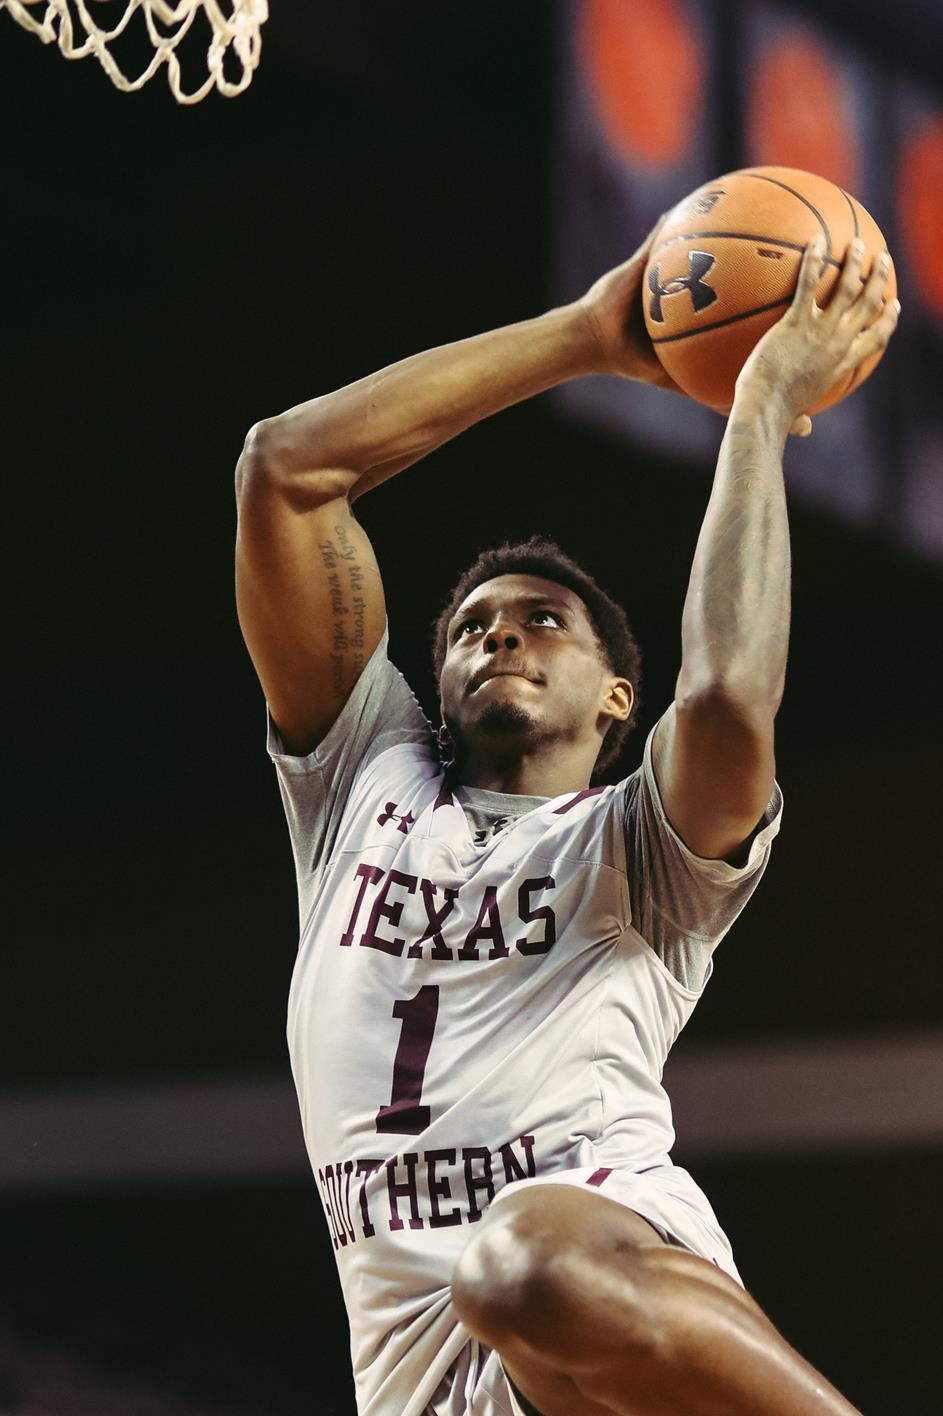 Texas Southern Tigers Fall In Final Minutes To Grambling State, 78-72